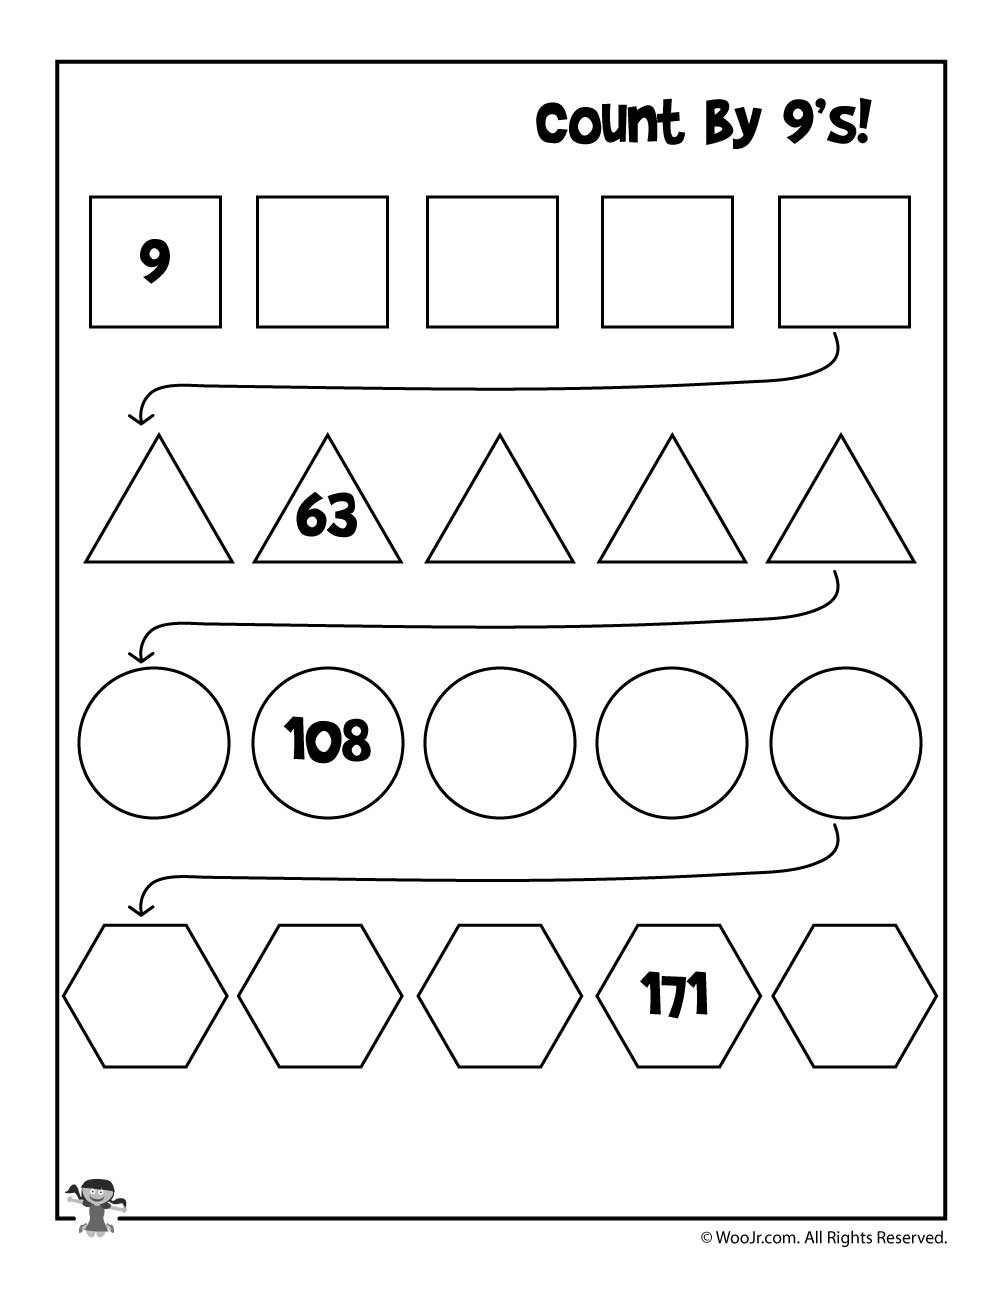 Skip Counting Worksheets 3rd Grade Simple Skip Counting Worksheets to Print